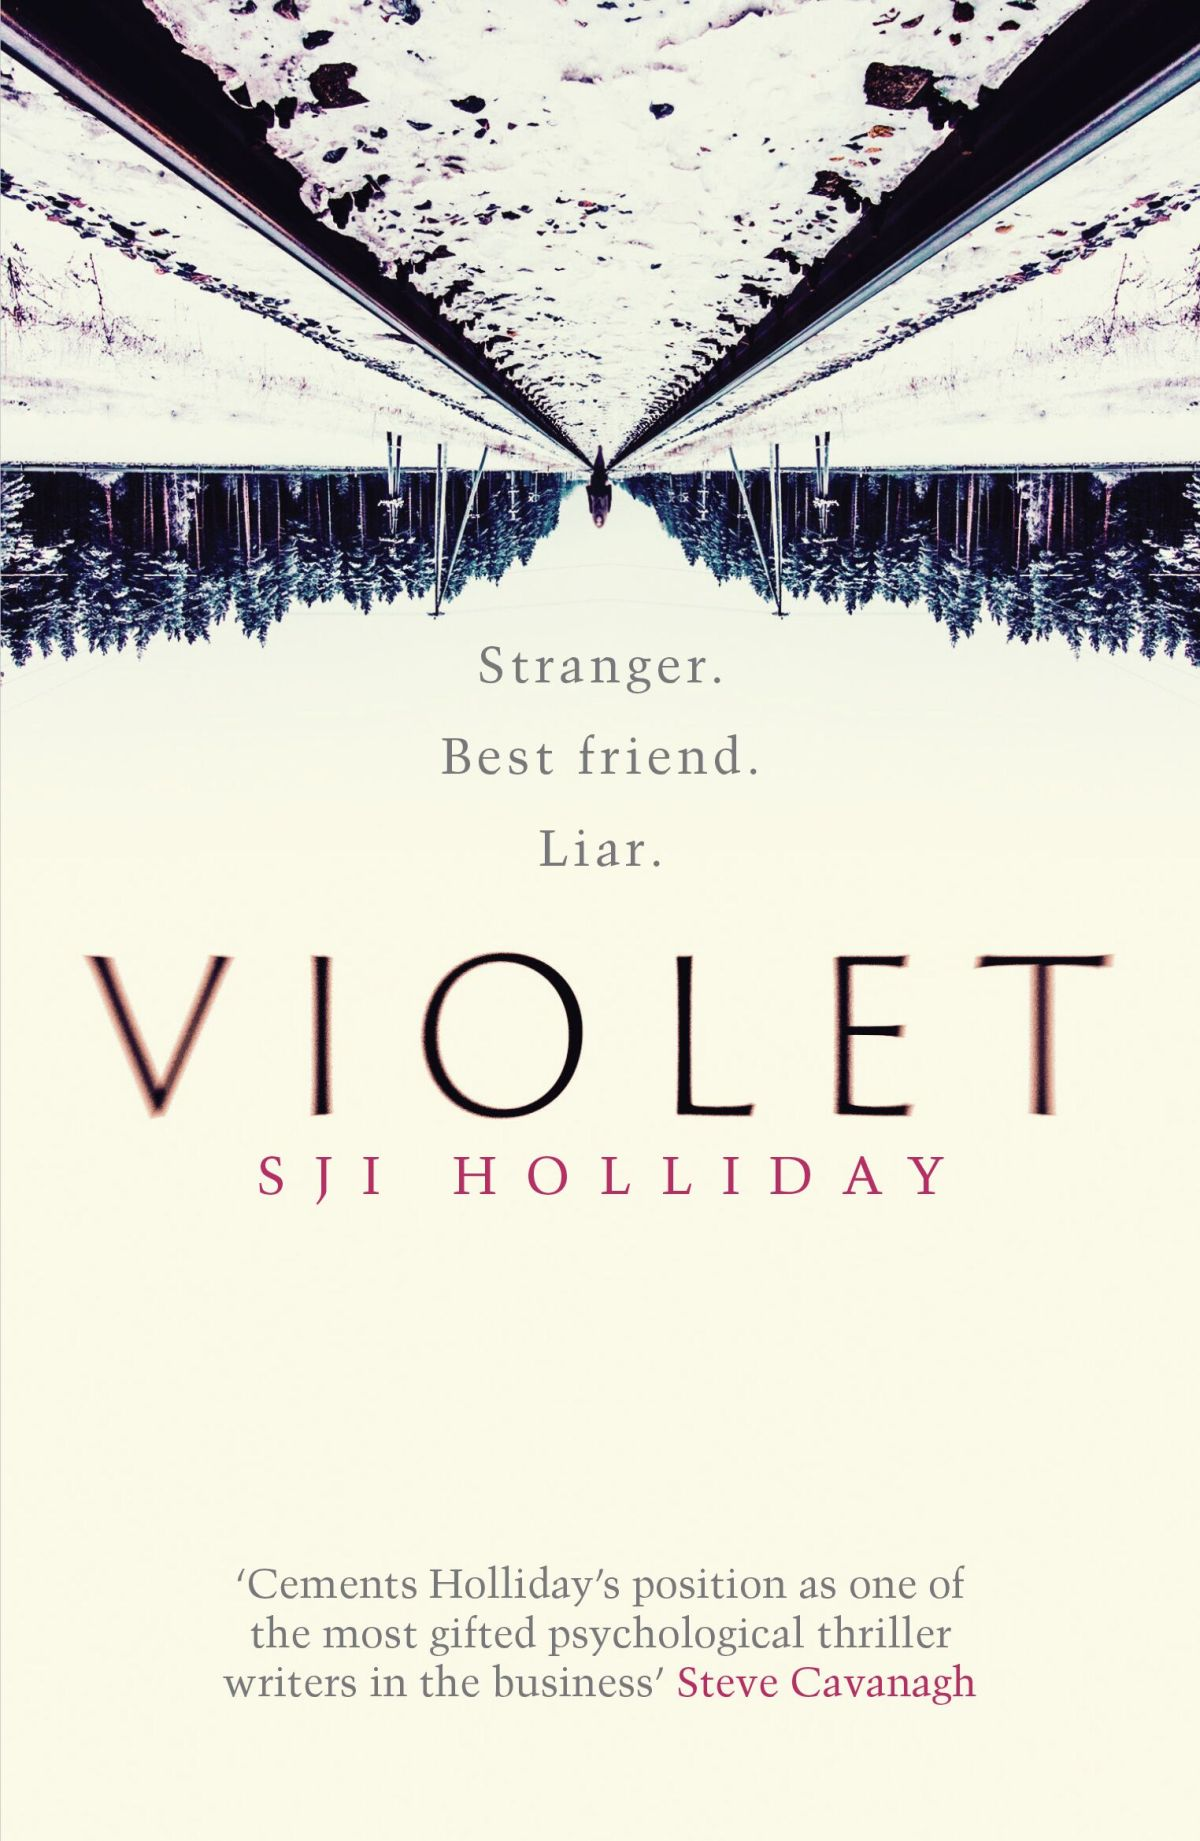 Blog Tour:  Violet by S.J.I. Holliday Ellen's Review